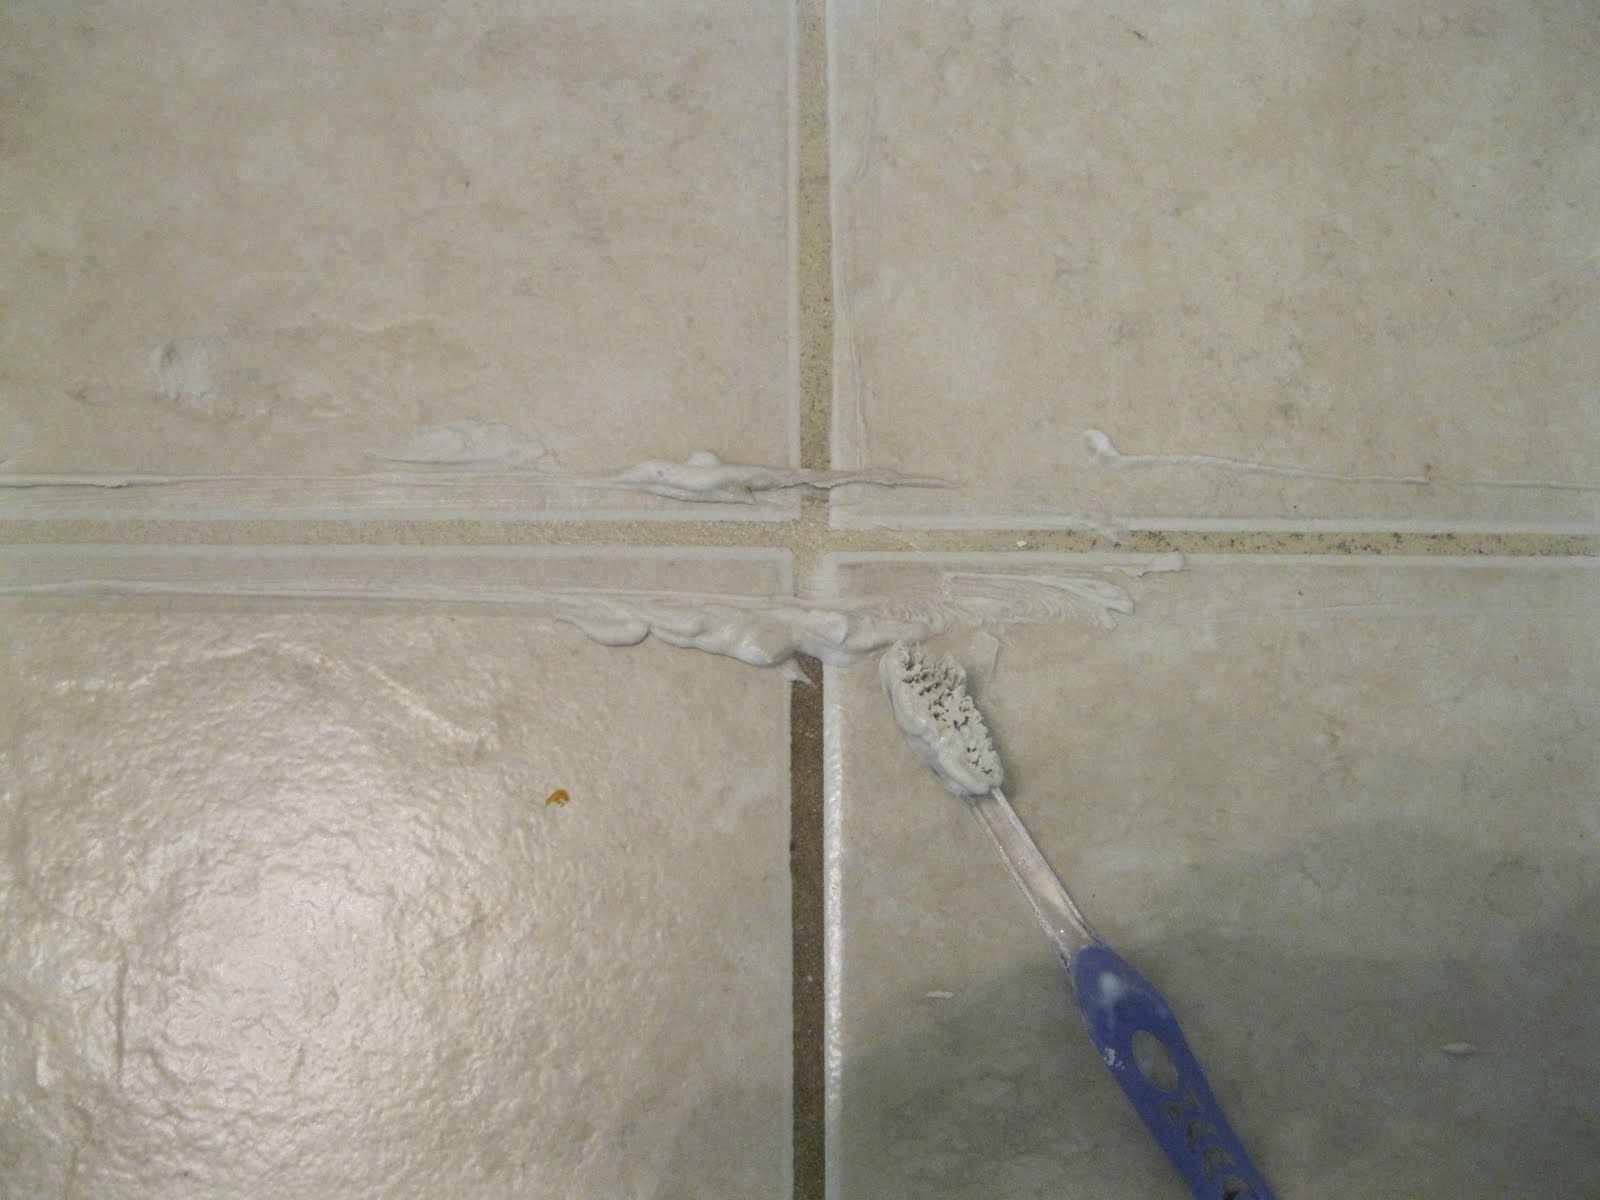 Bathroom Grout Cleaner grout cleaner: white vinegar, baking soda, cream of tartar